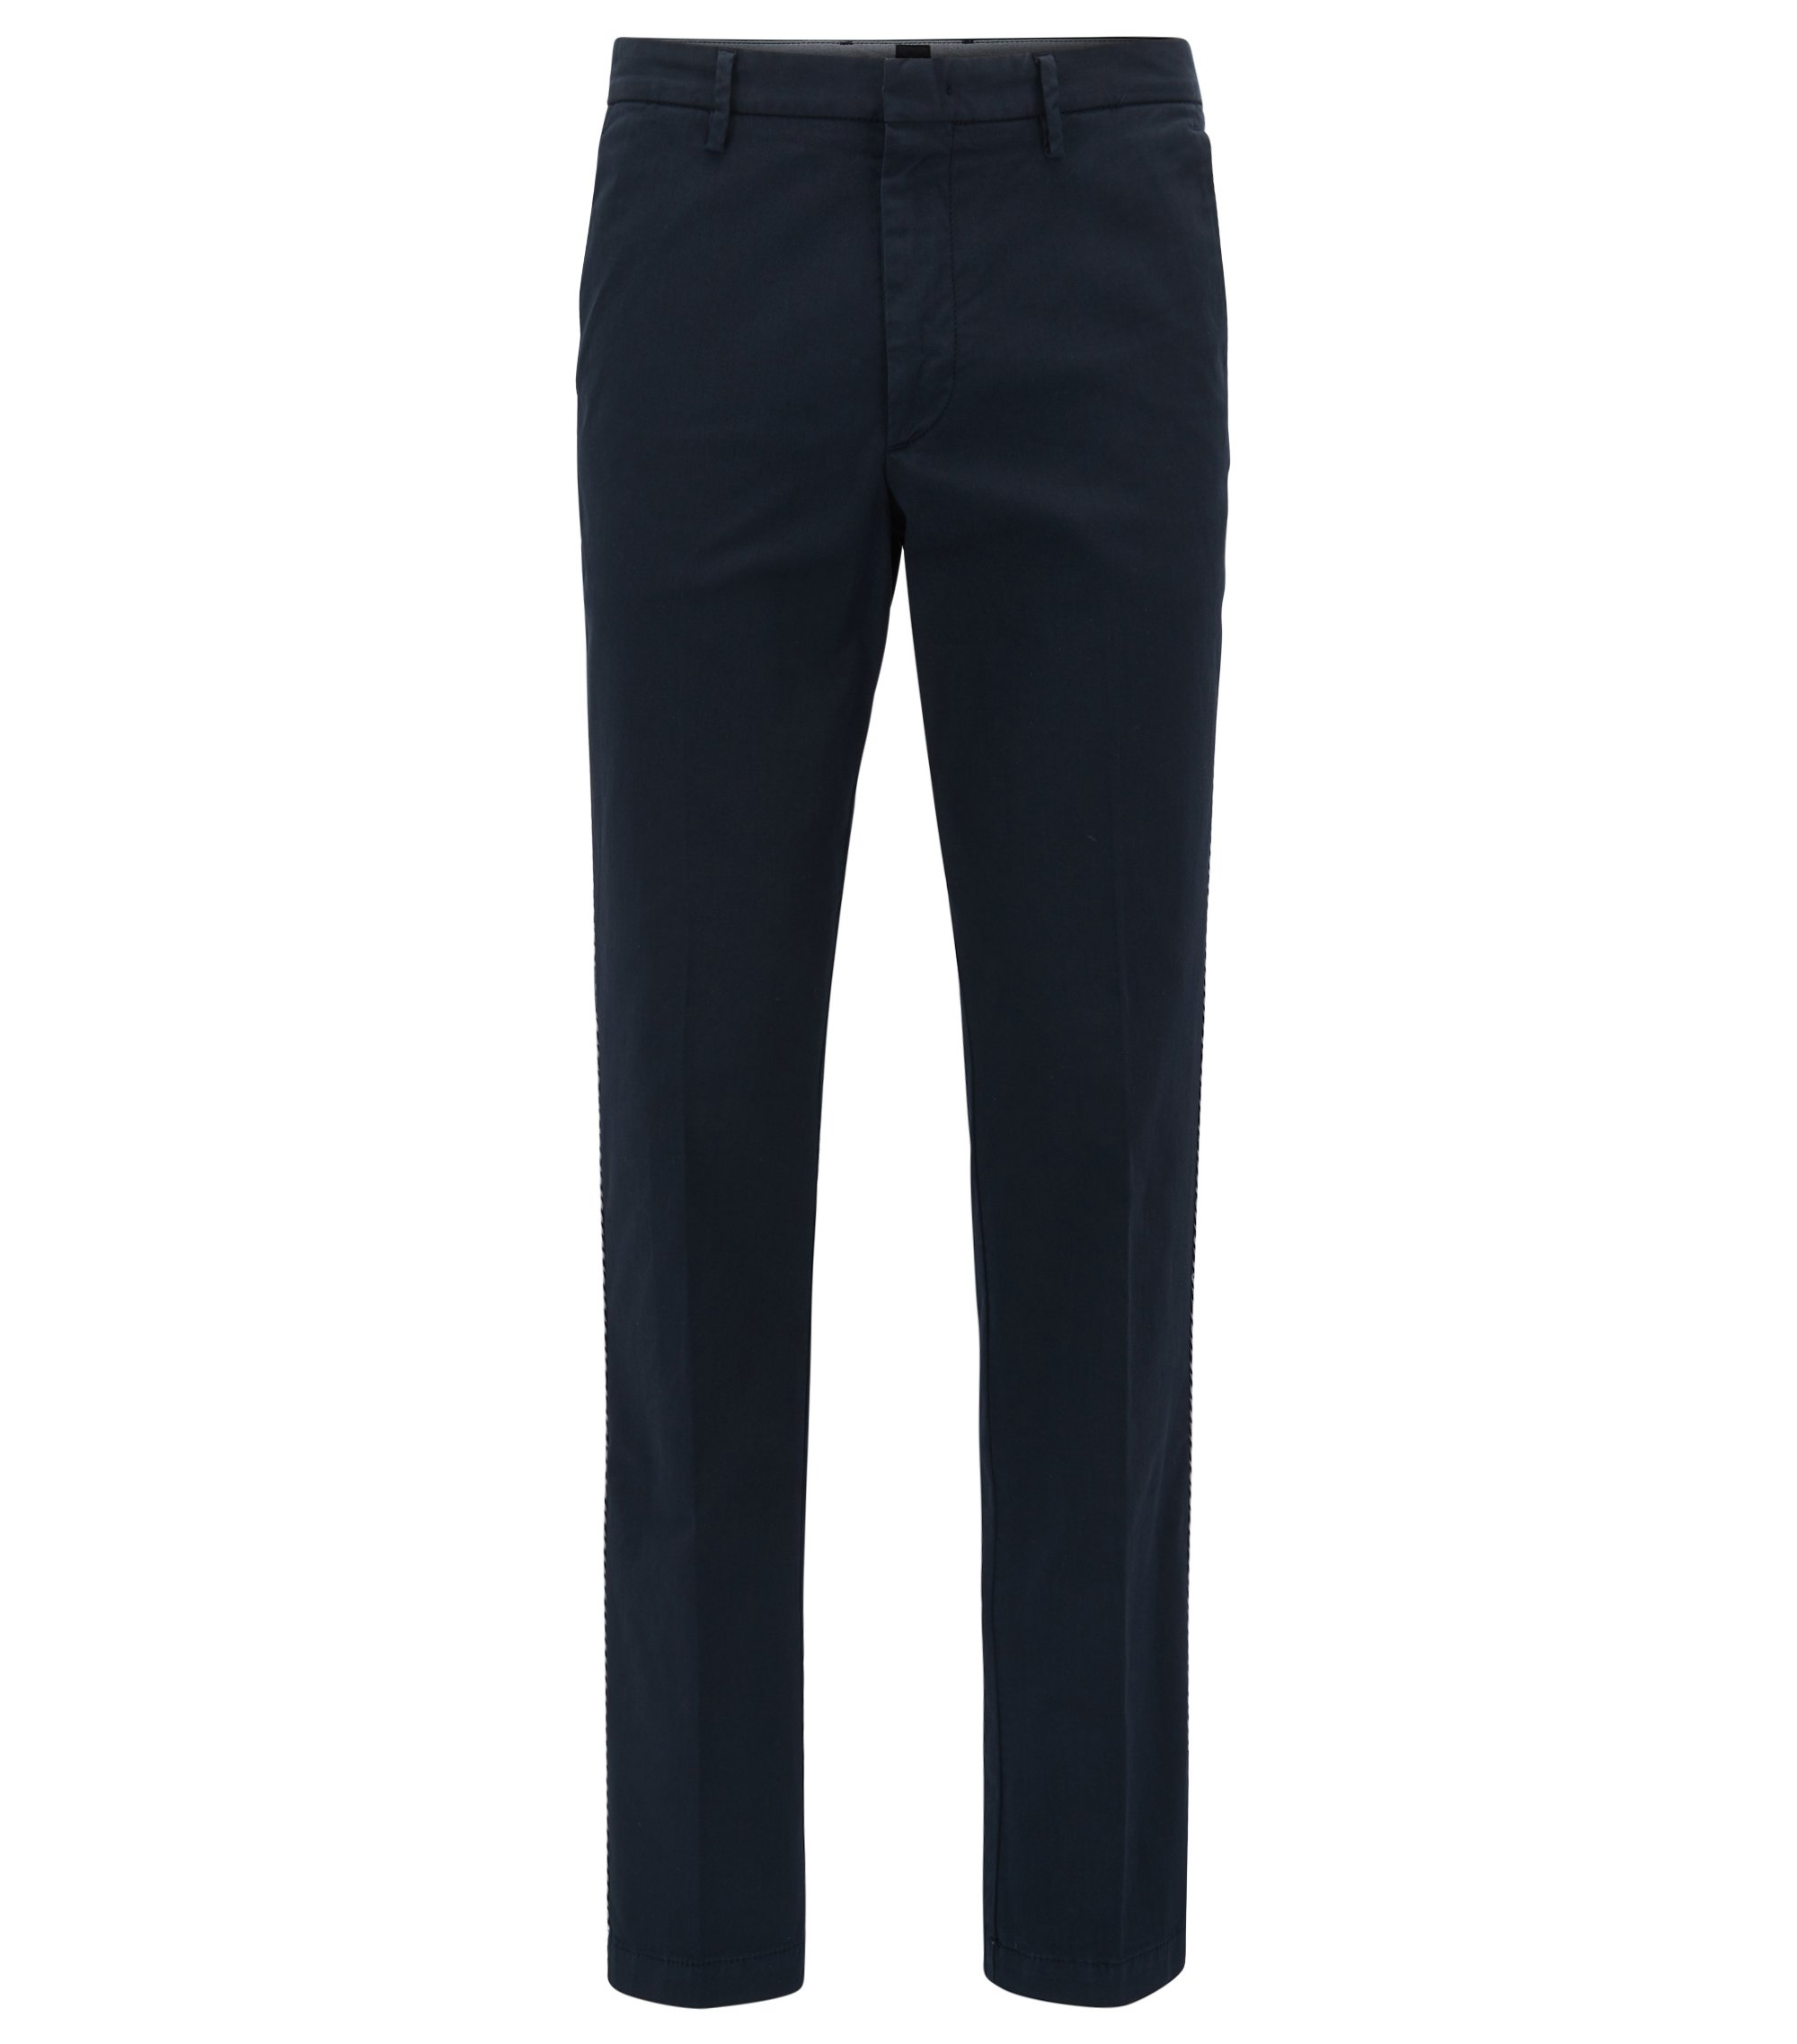 Stretch Cotton Gabardine Pant, Slim Fit | Kaito Rope D, Dark Blue